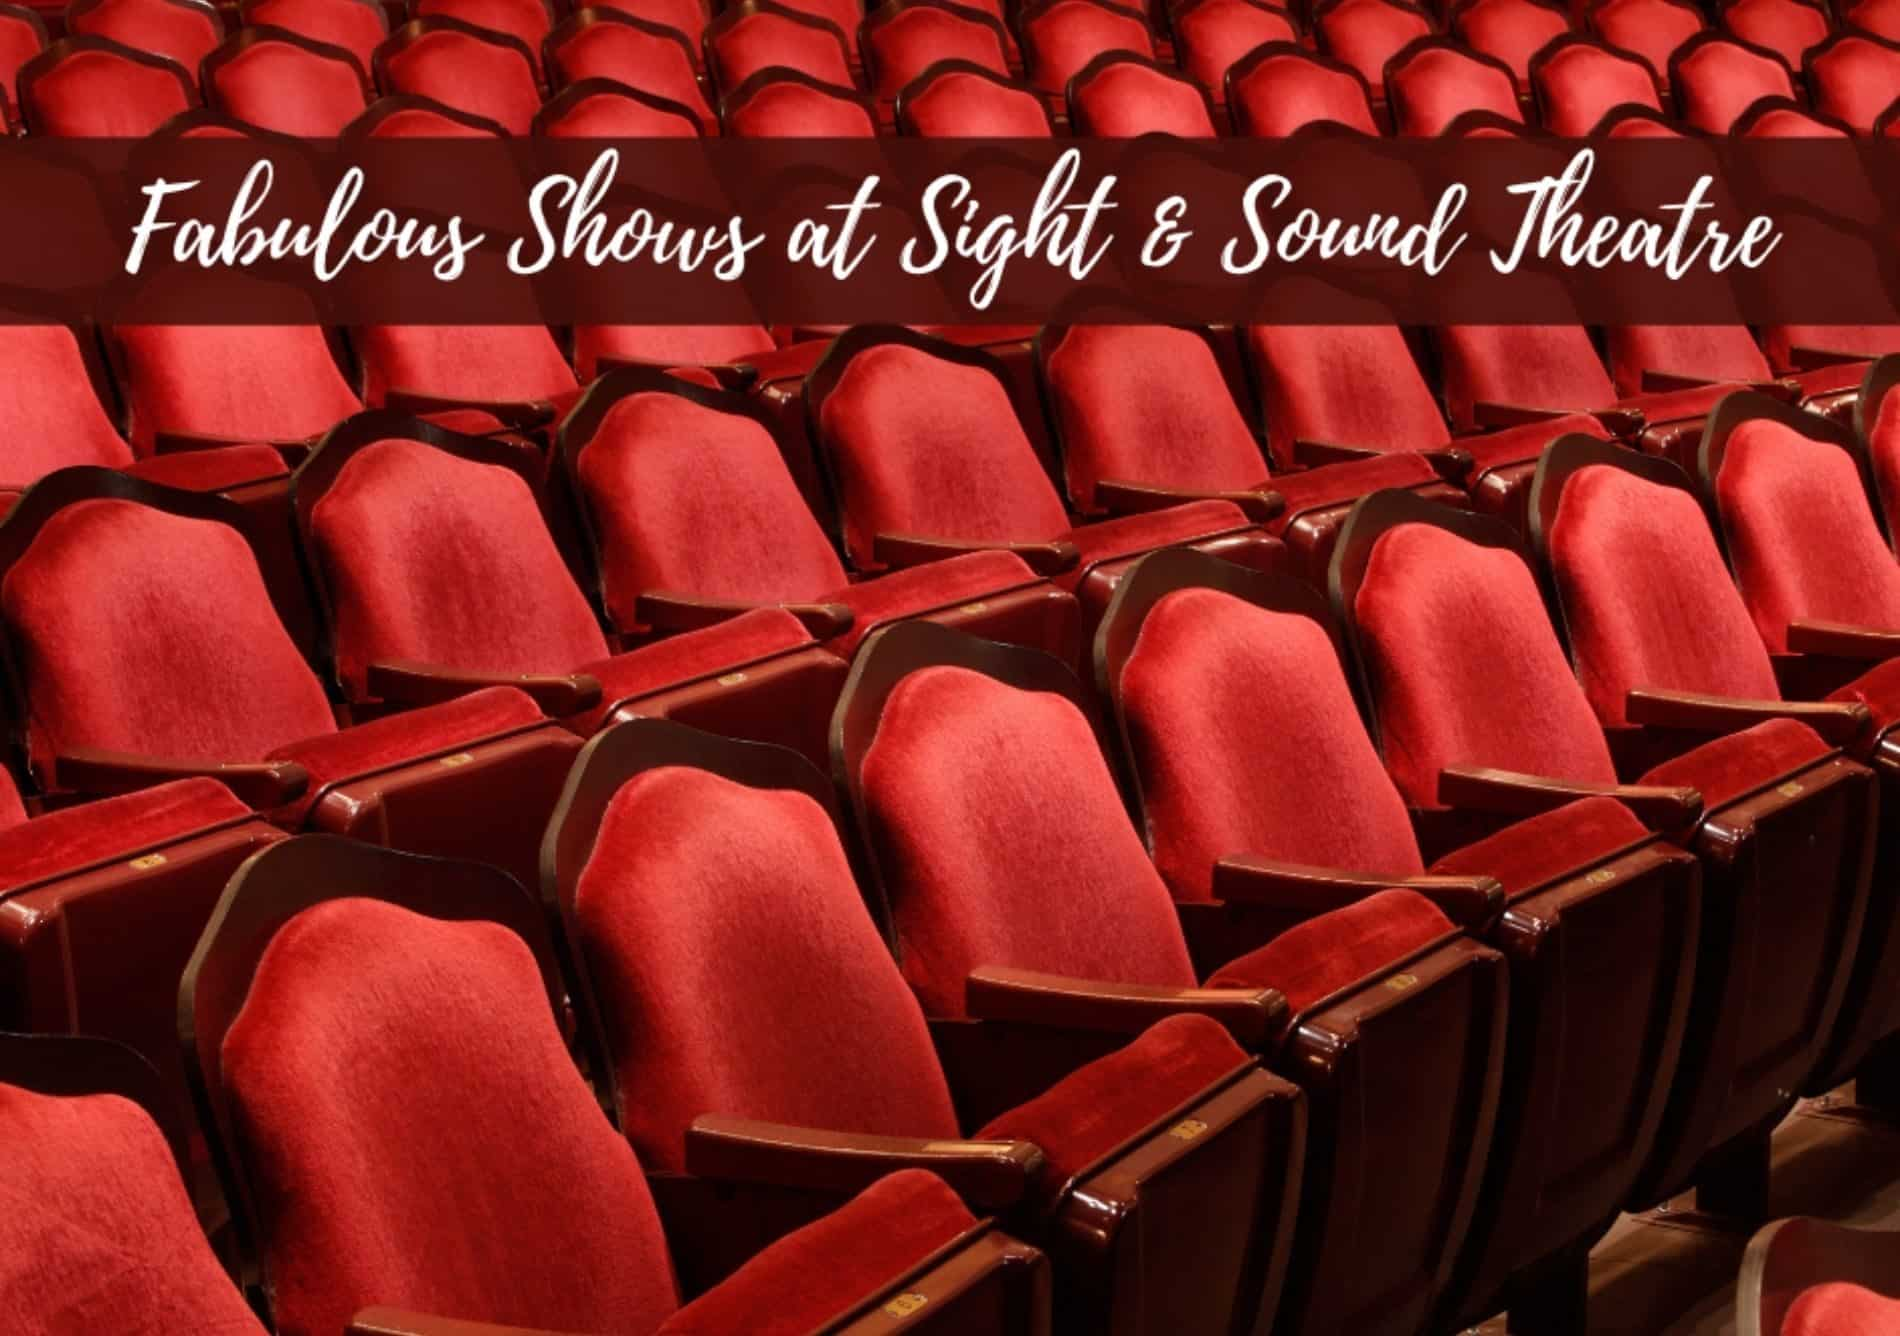 Rows of red velvet theater seats